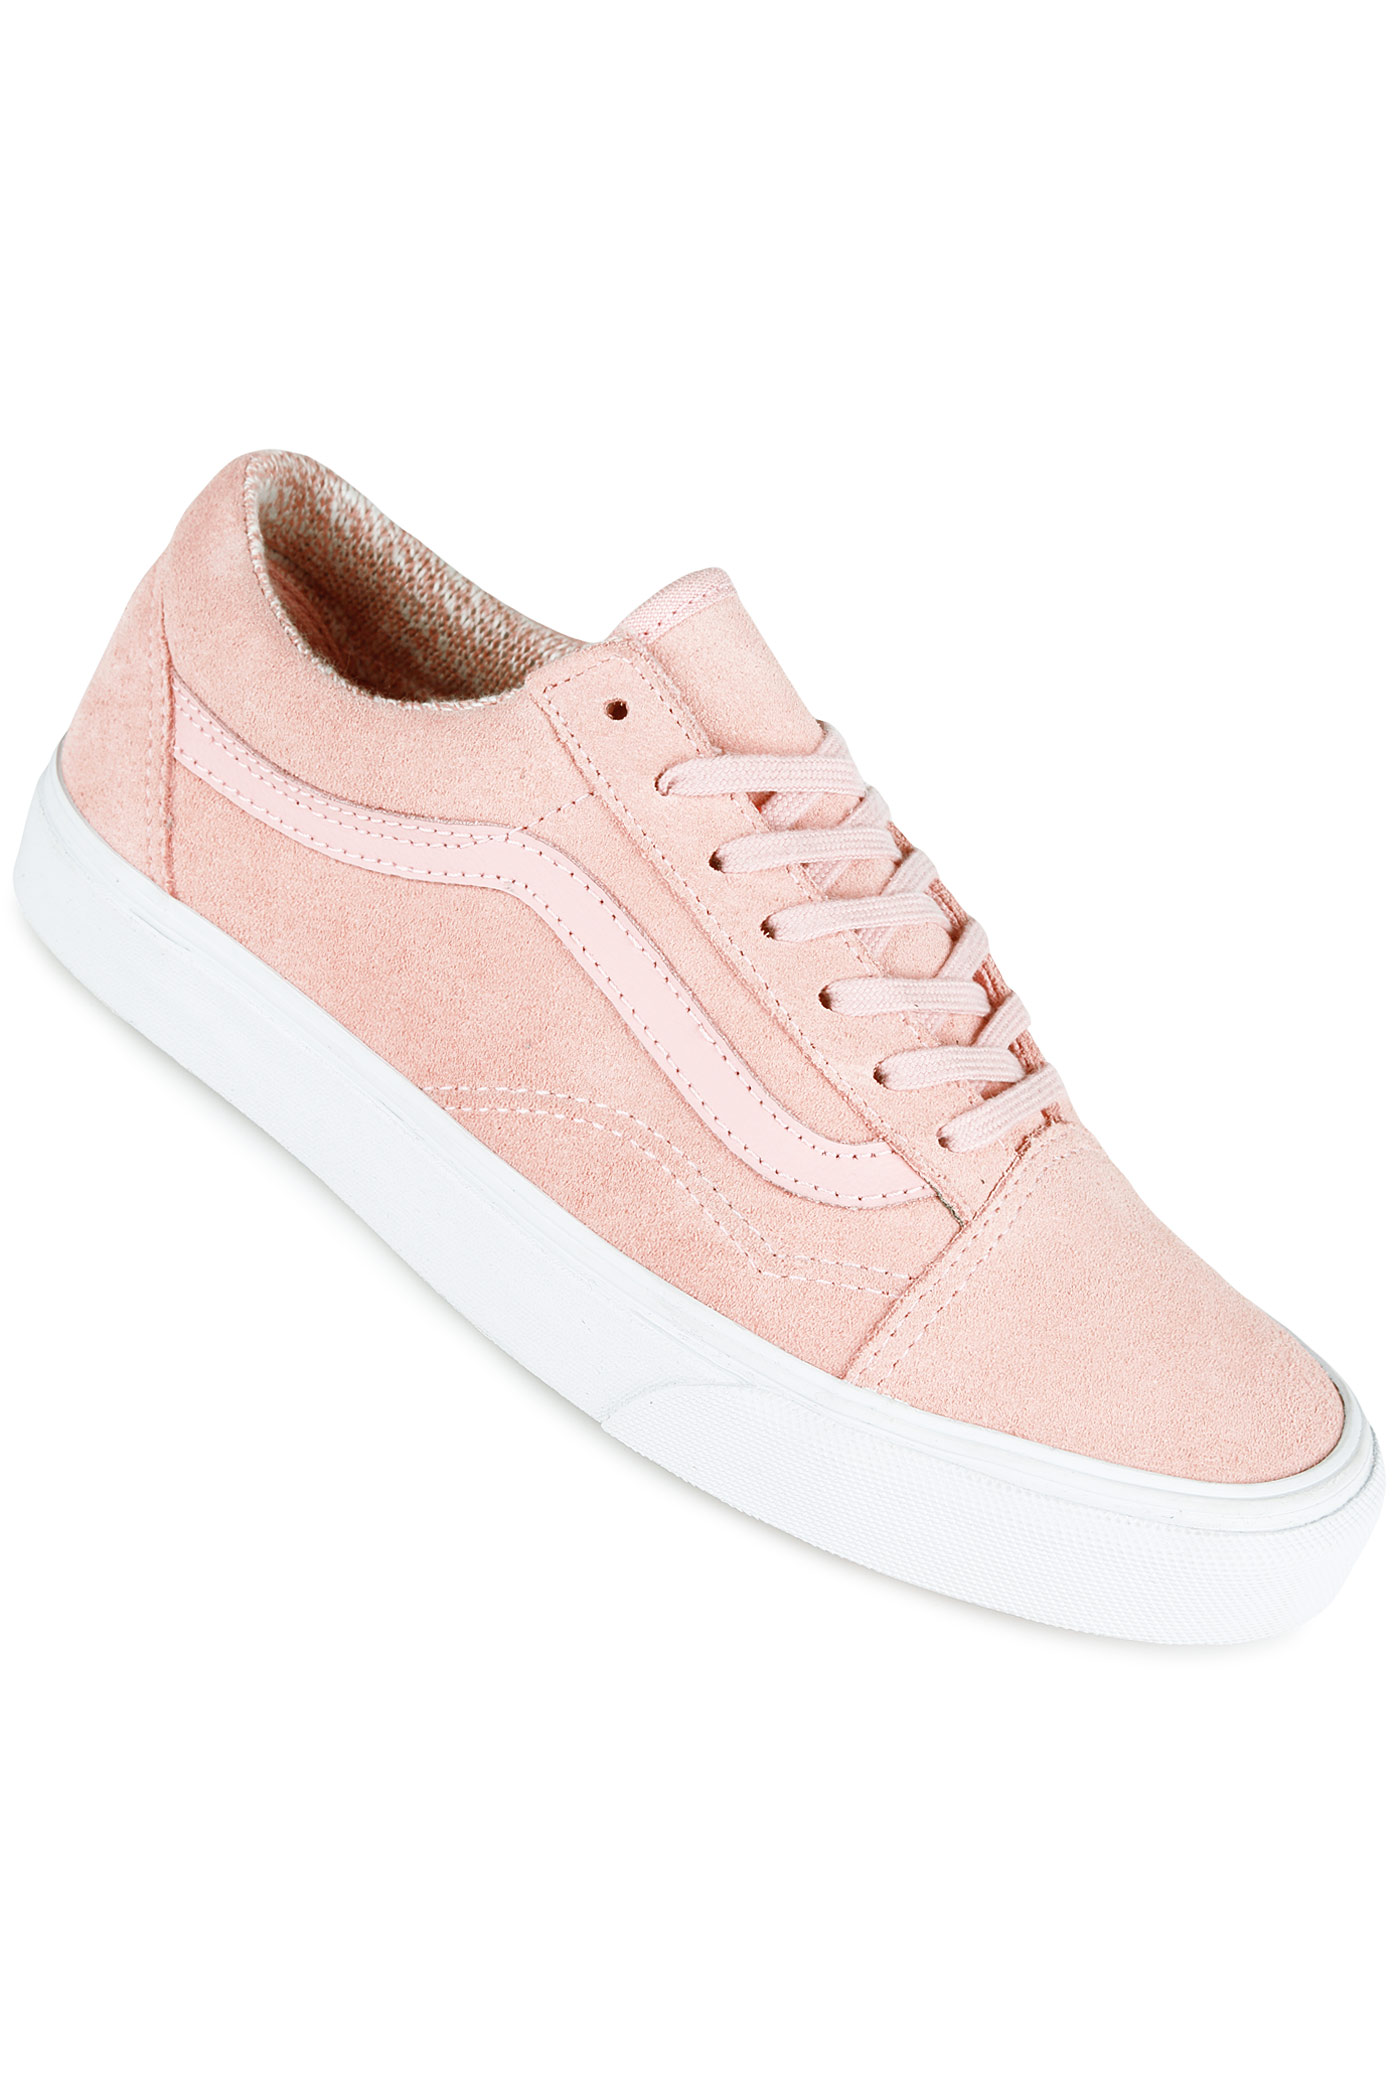 old school vans damen rose